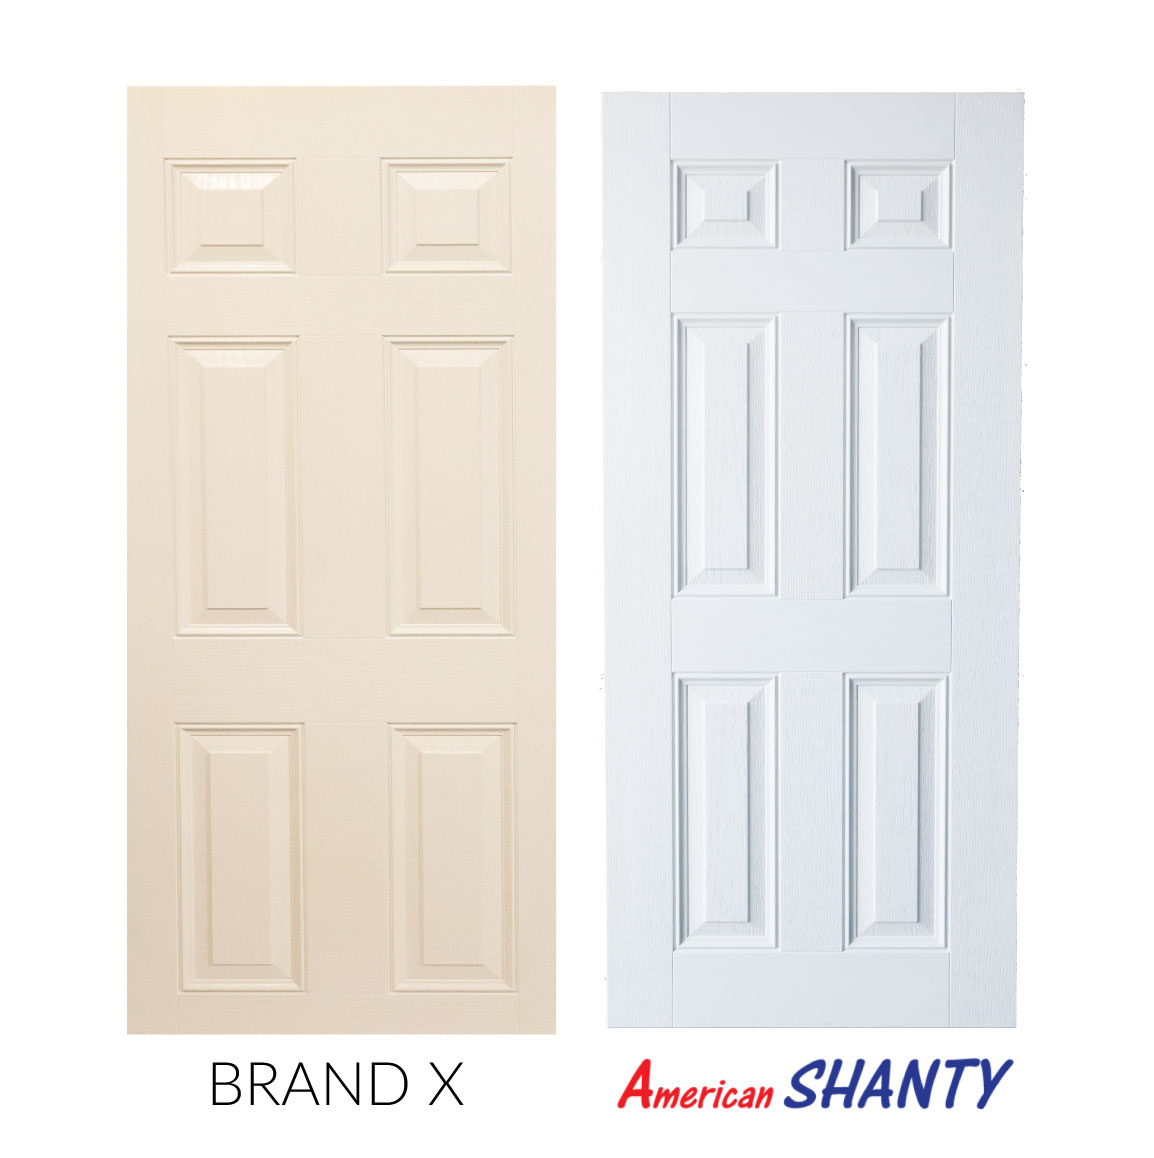 Tru Shed Door Perfectly Proportioned & Built to Last | American Shanty